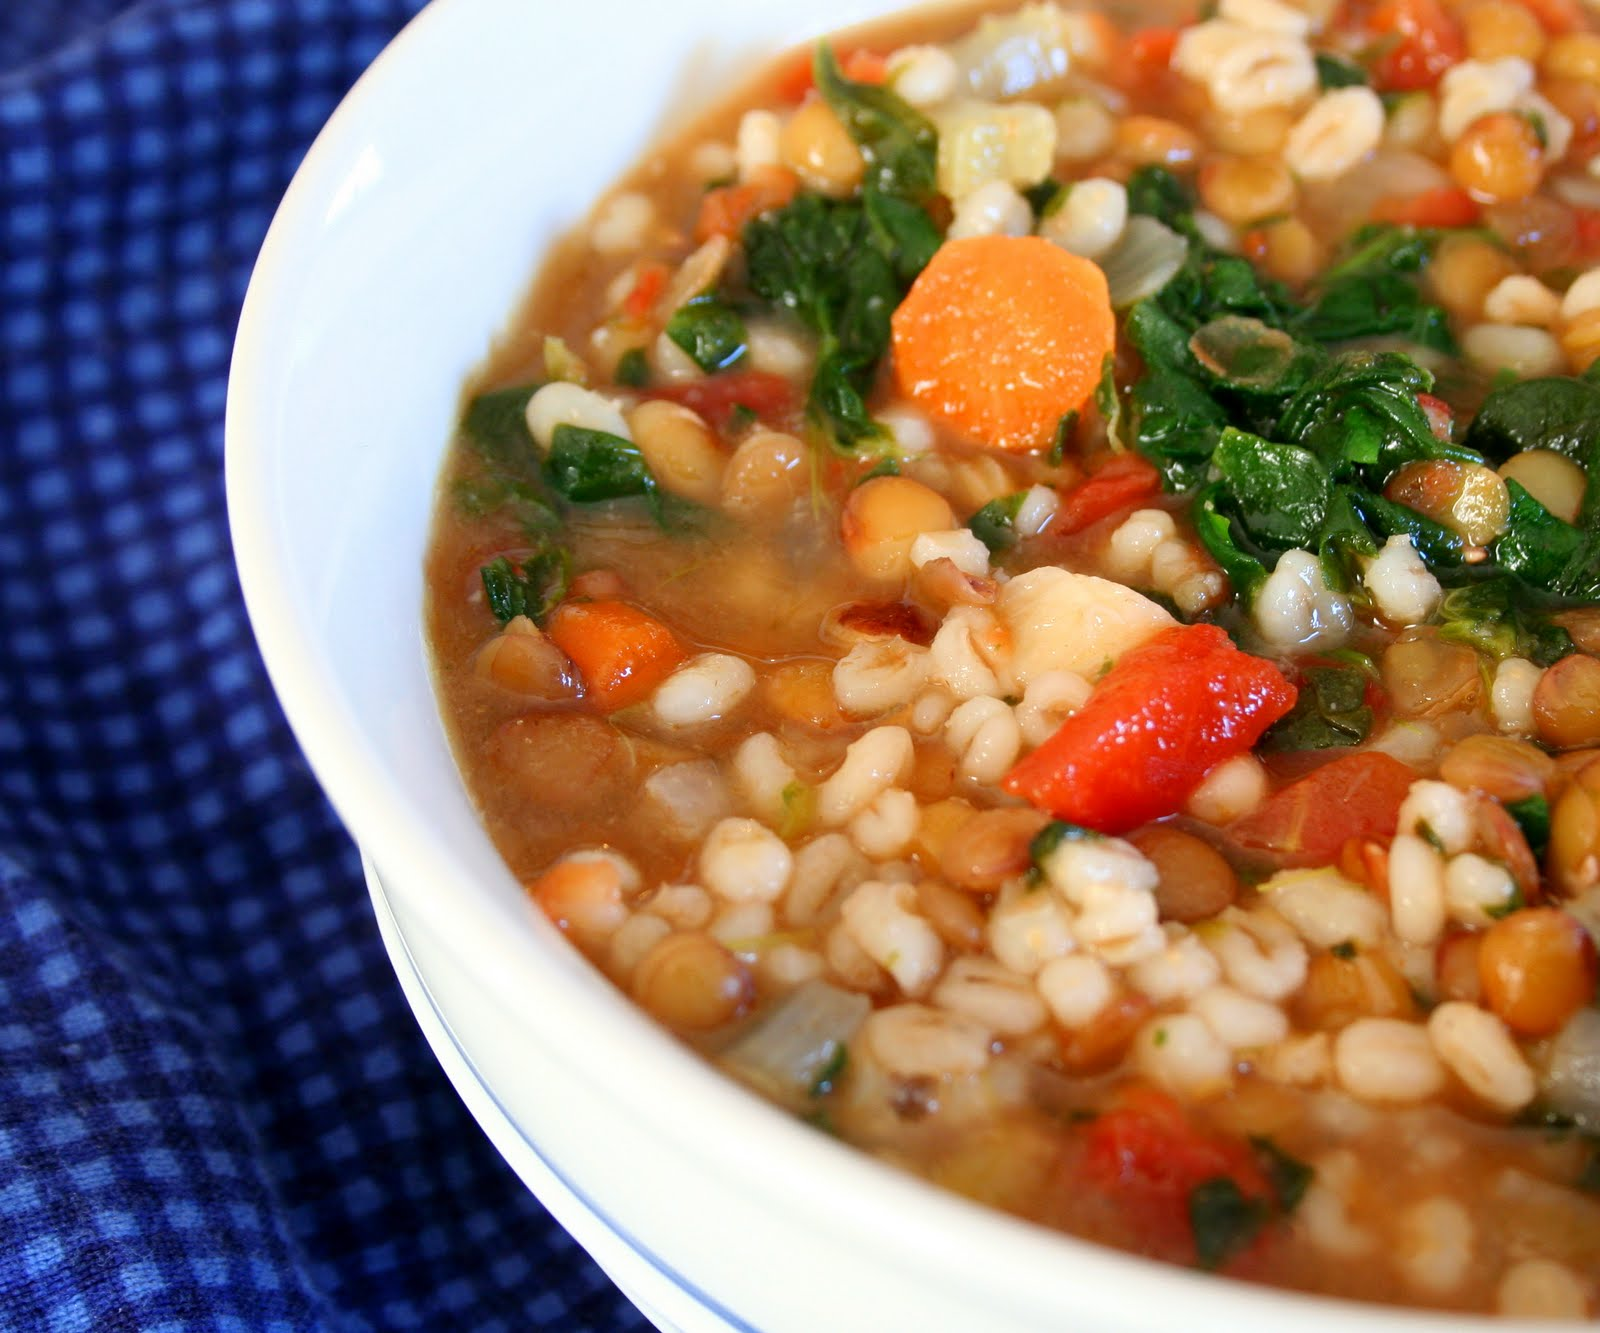 Cumin Lentil Barley Stew All Day I Dream About Food